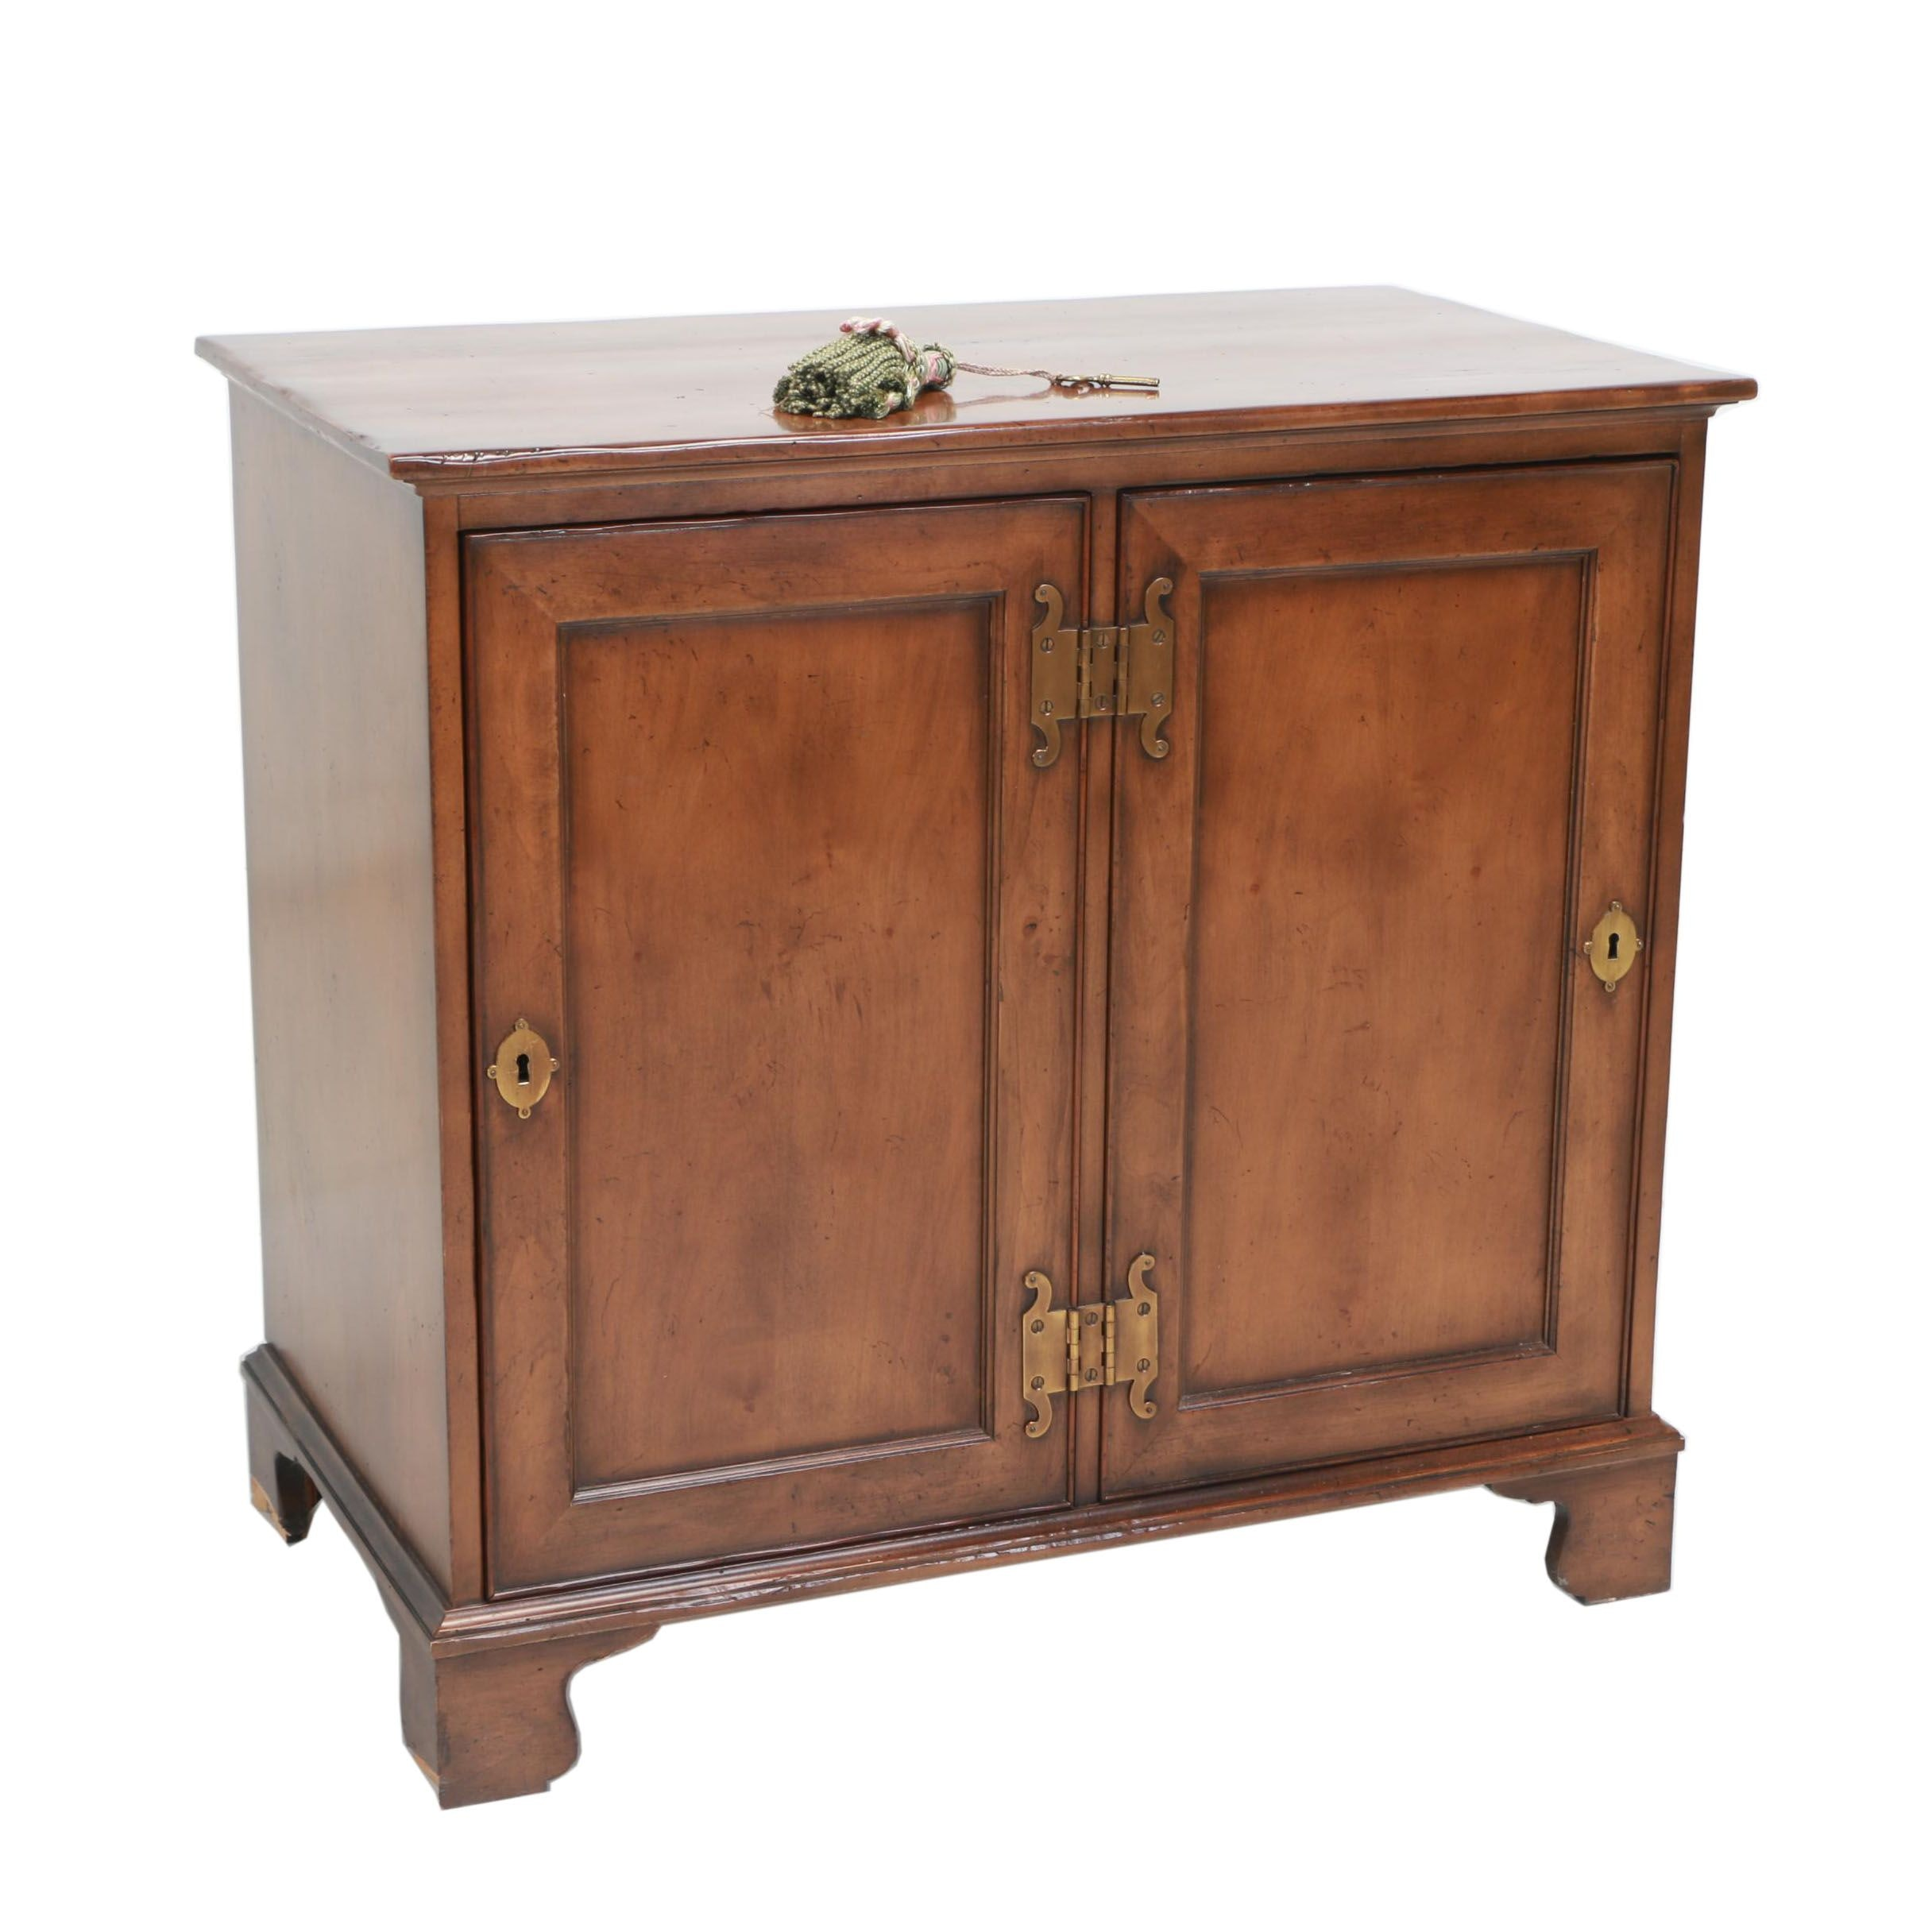 George III Style Walnut-Stained Side Cabinet by Baker Furniture, 20th Century